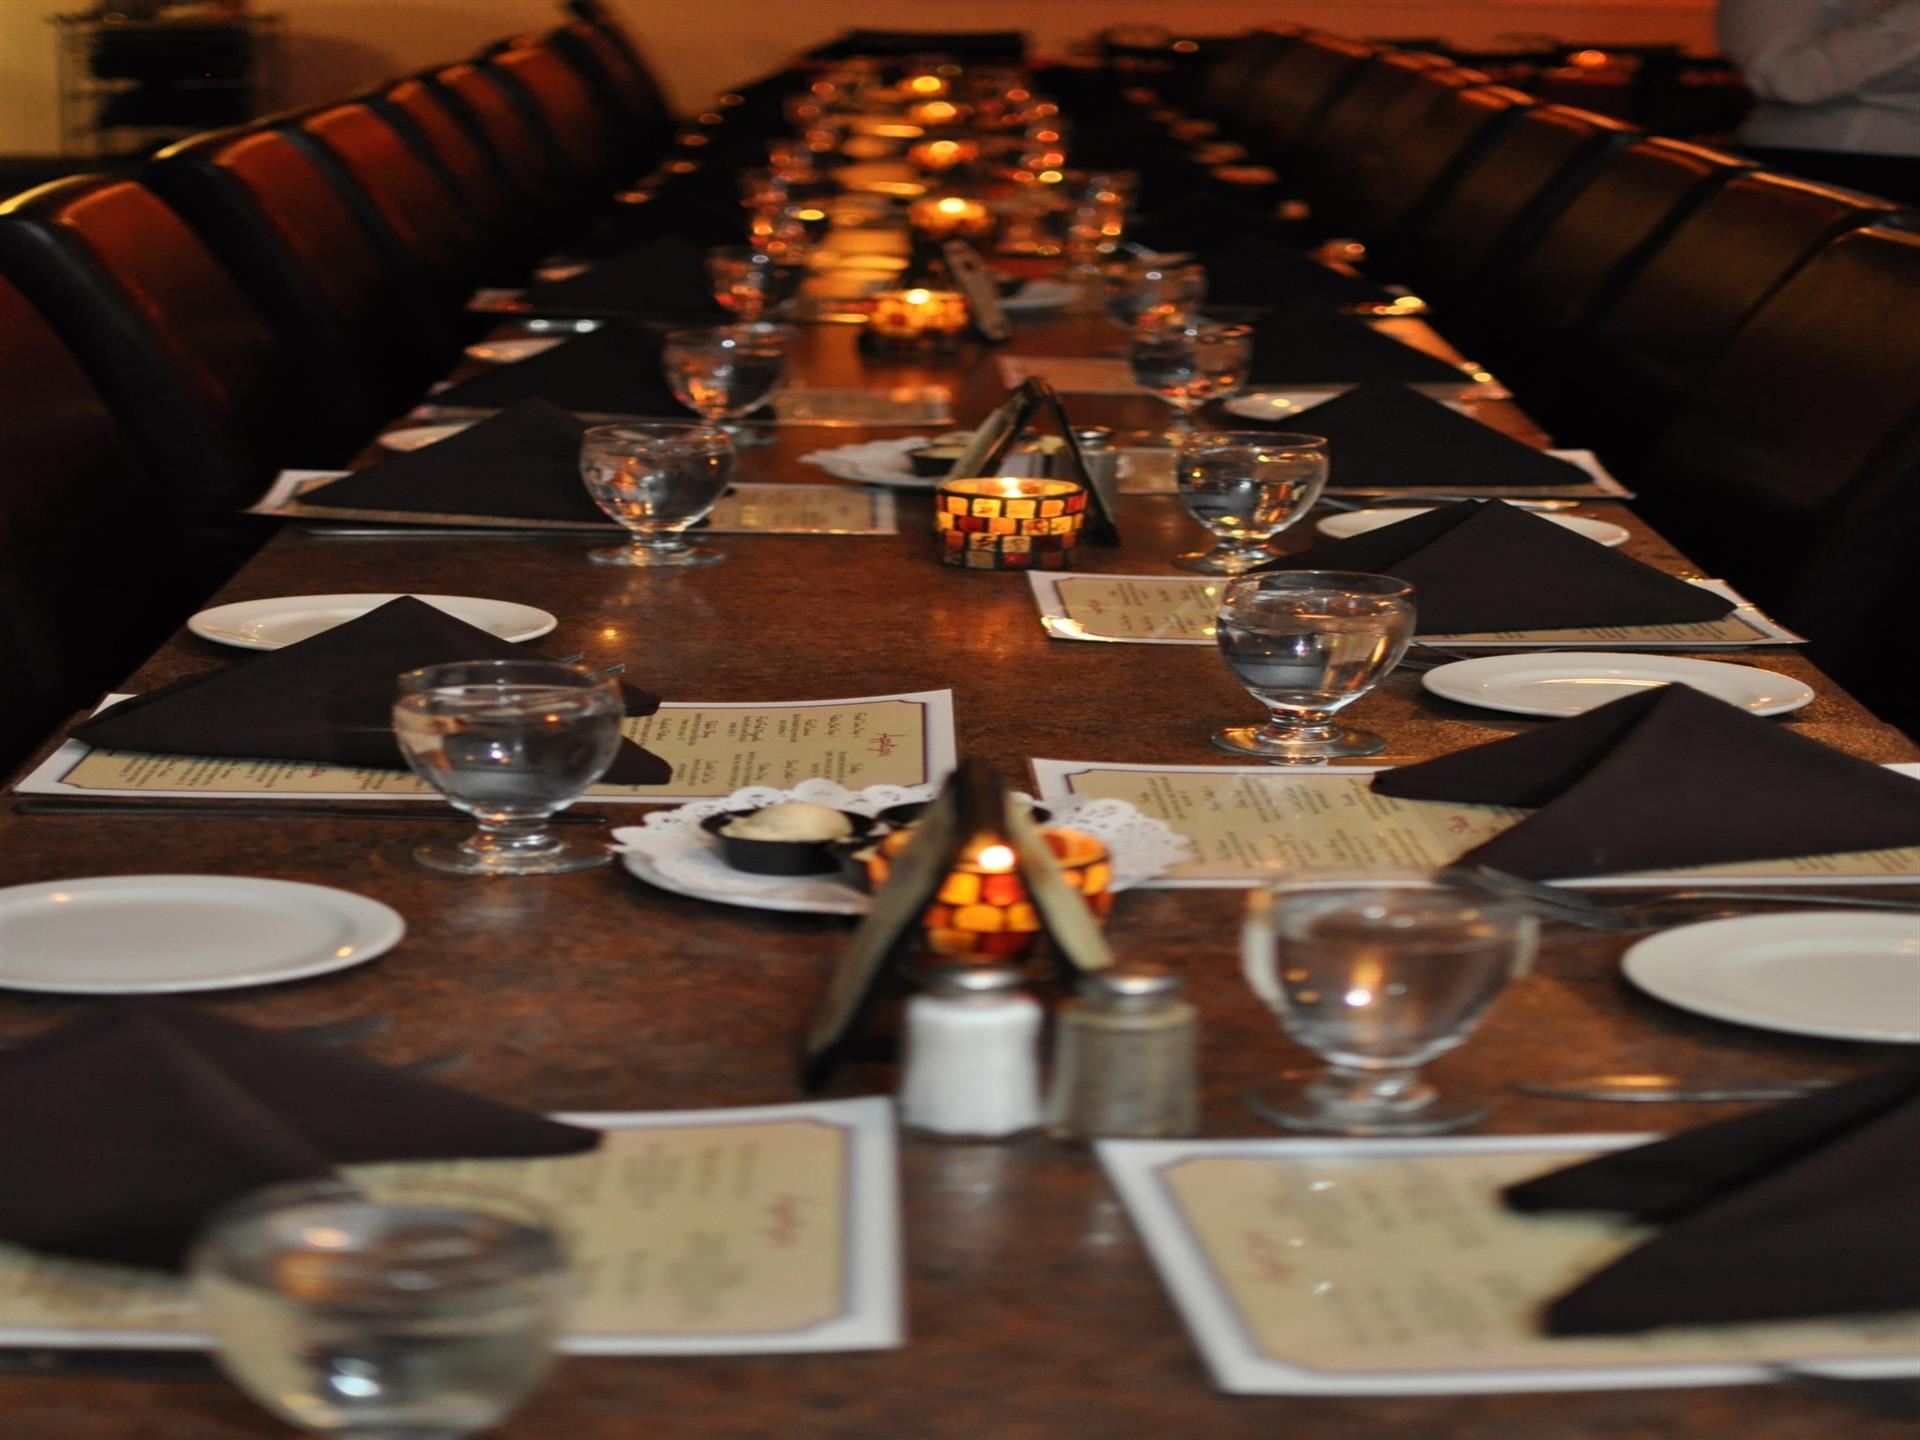 long table with plates and silverware